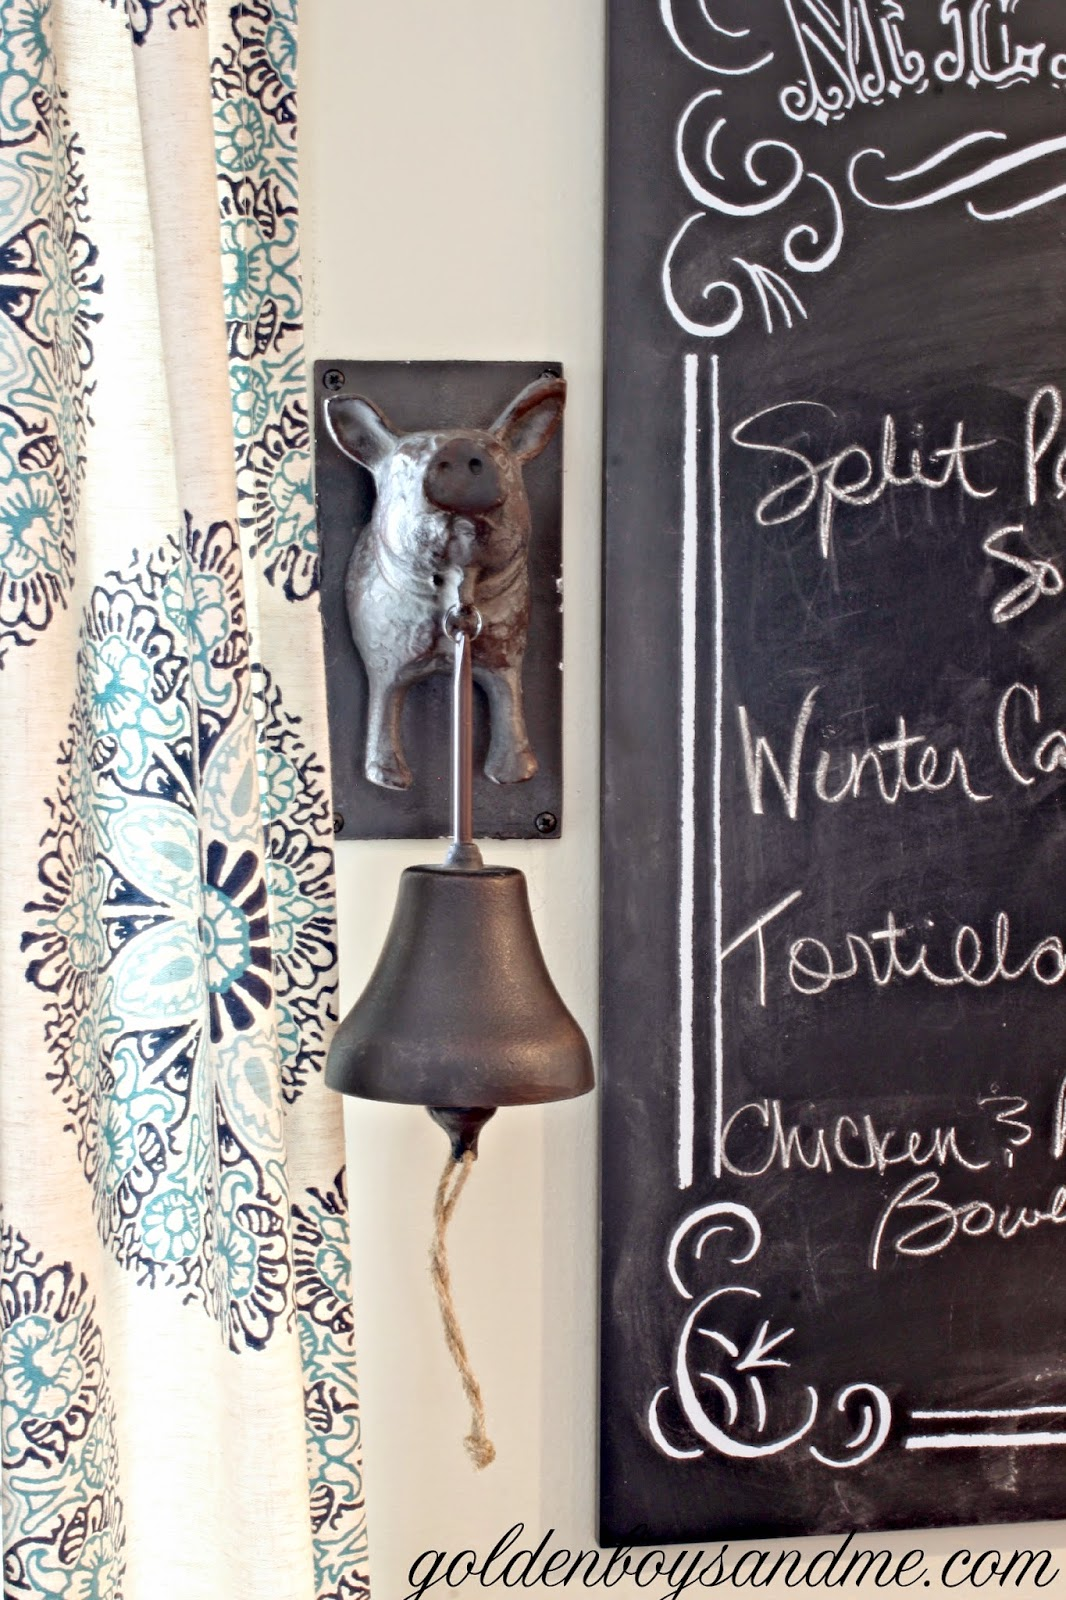 Pottery Barn iron pig dinner bell in country kitchen-www.goldenboysandme.com